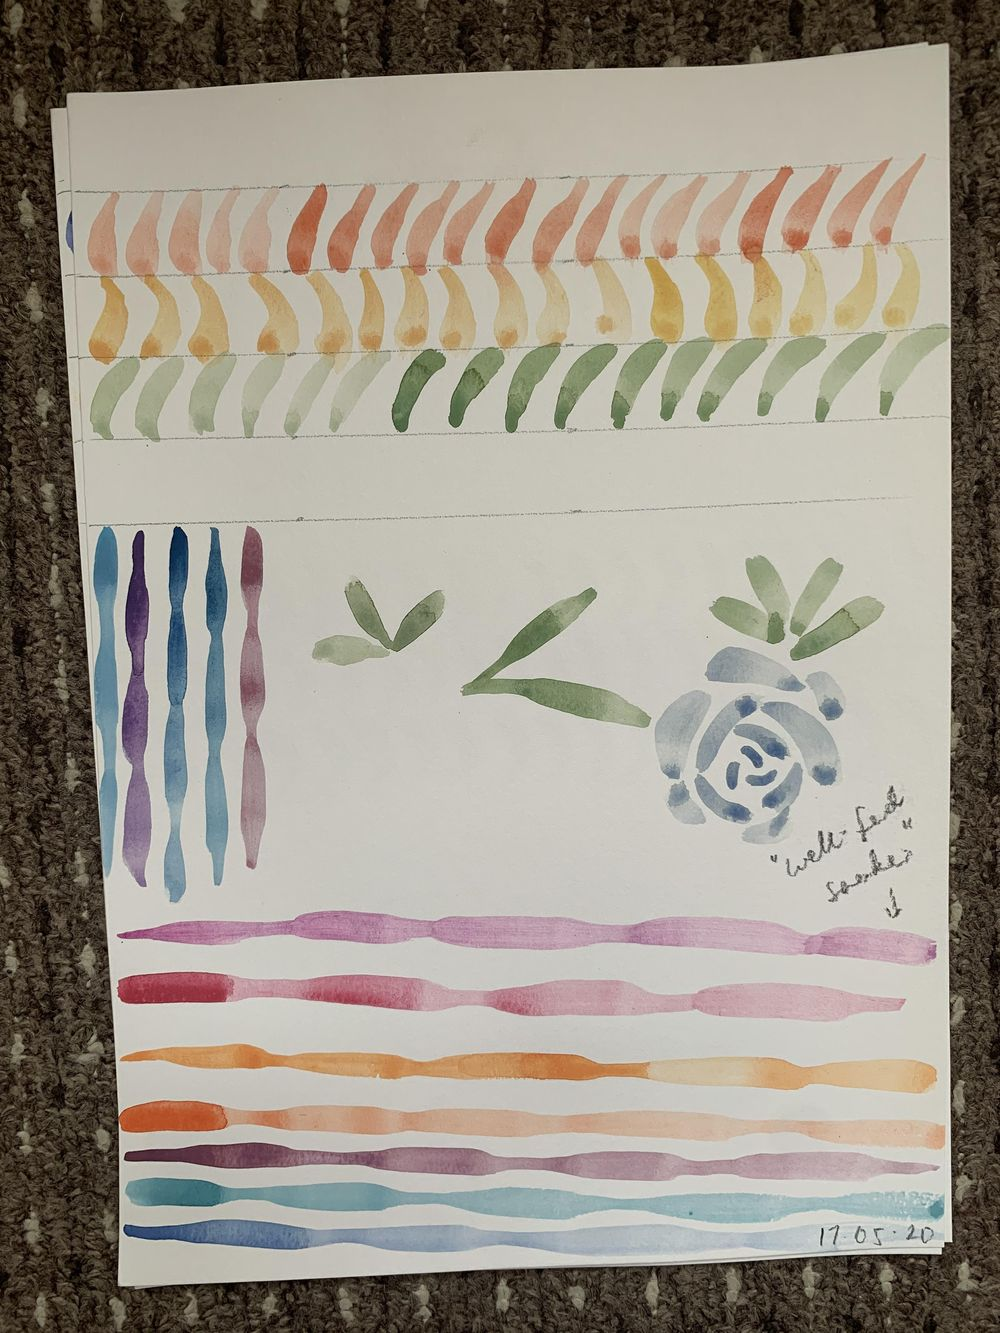 Watercolour Drills as a beginner! - image 11 - student project